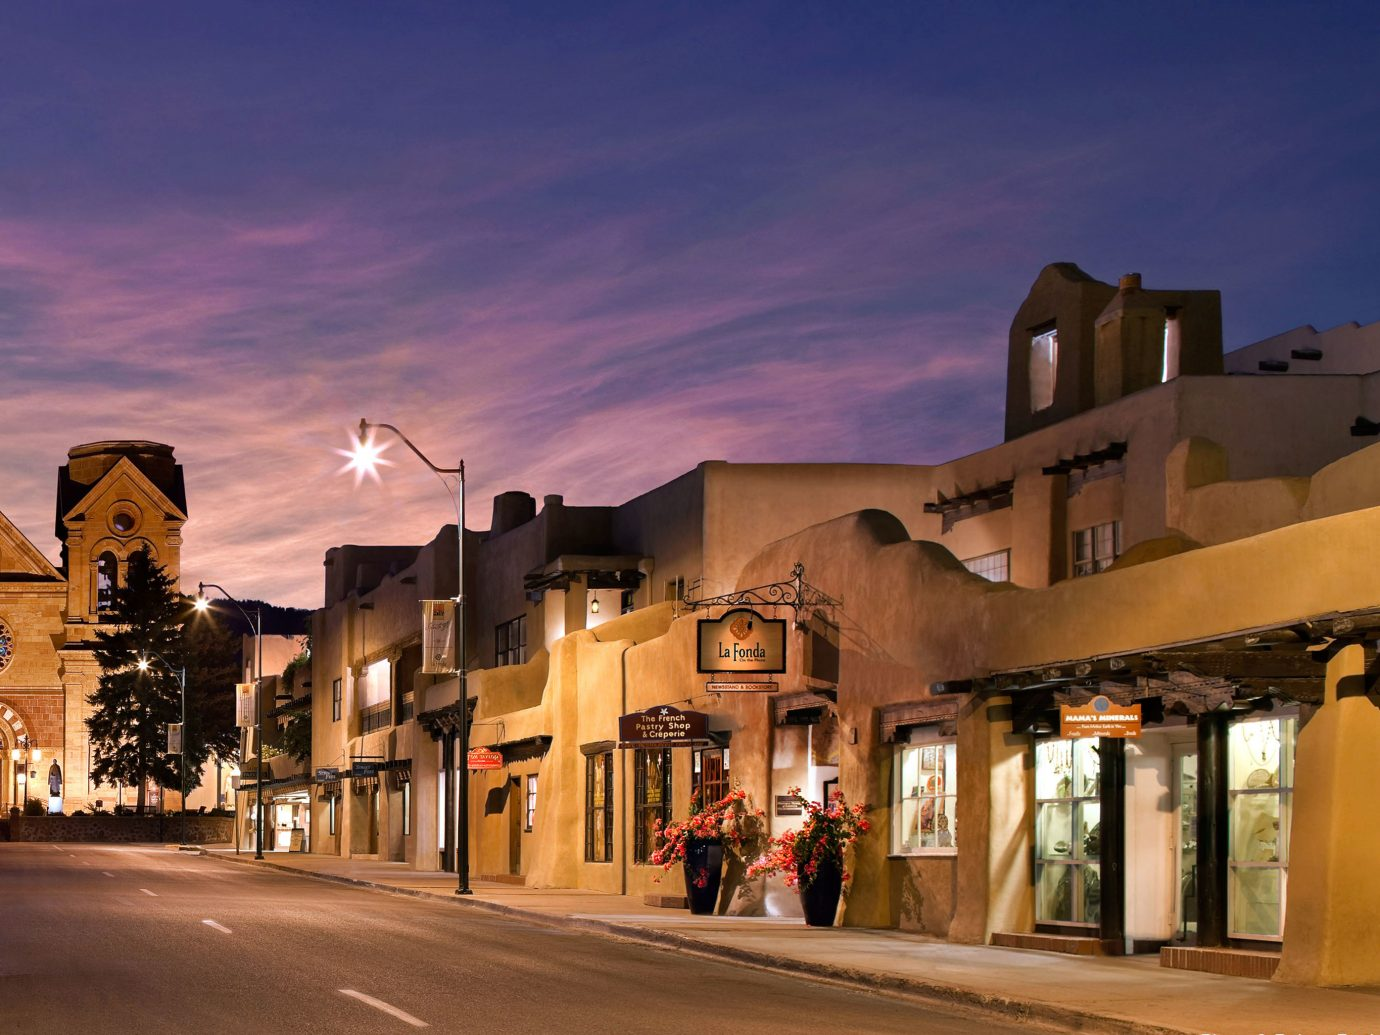 Exterior Historic Hotels Luxury building outdoor road sky street Town City night scene human settlement evening residential area way vacation cityscape Downtown dusk Sunset